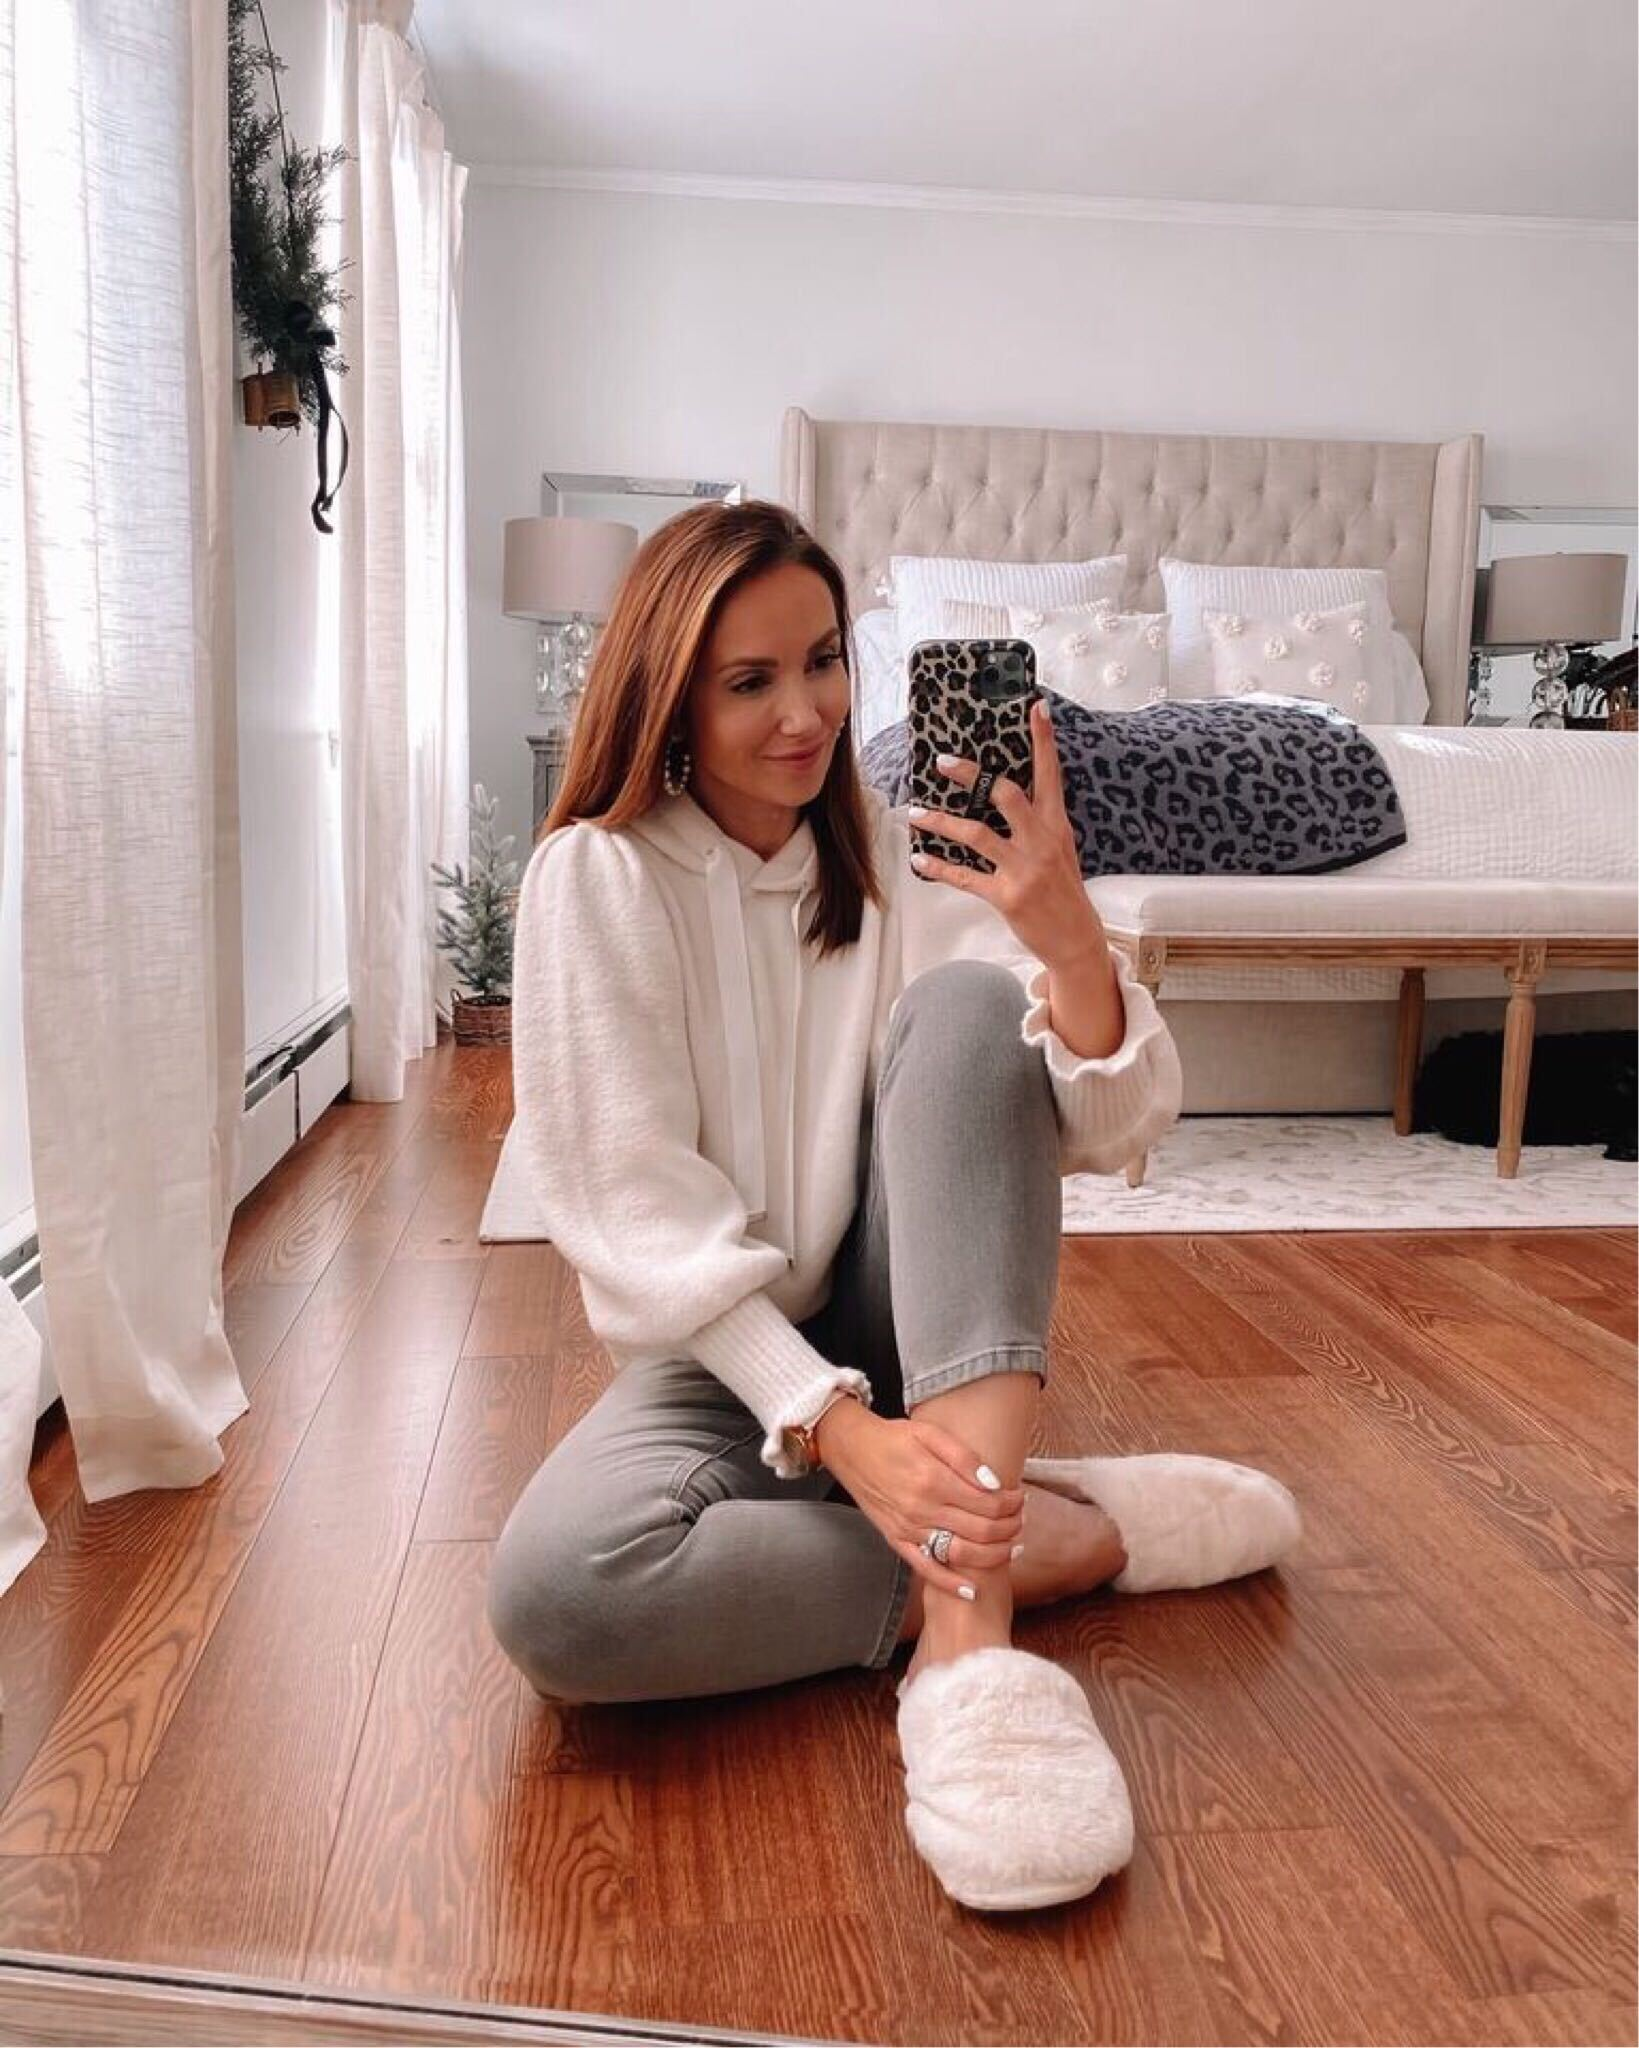 express white sweatshirt, grey jeans